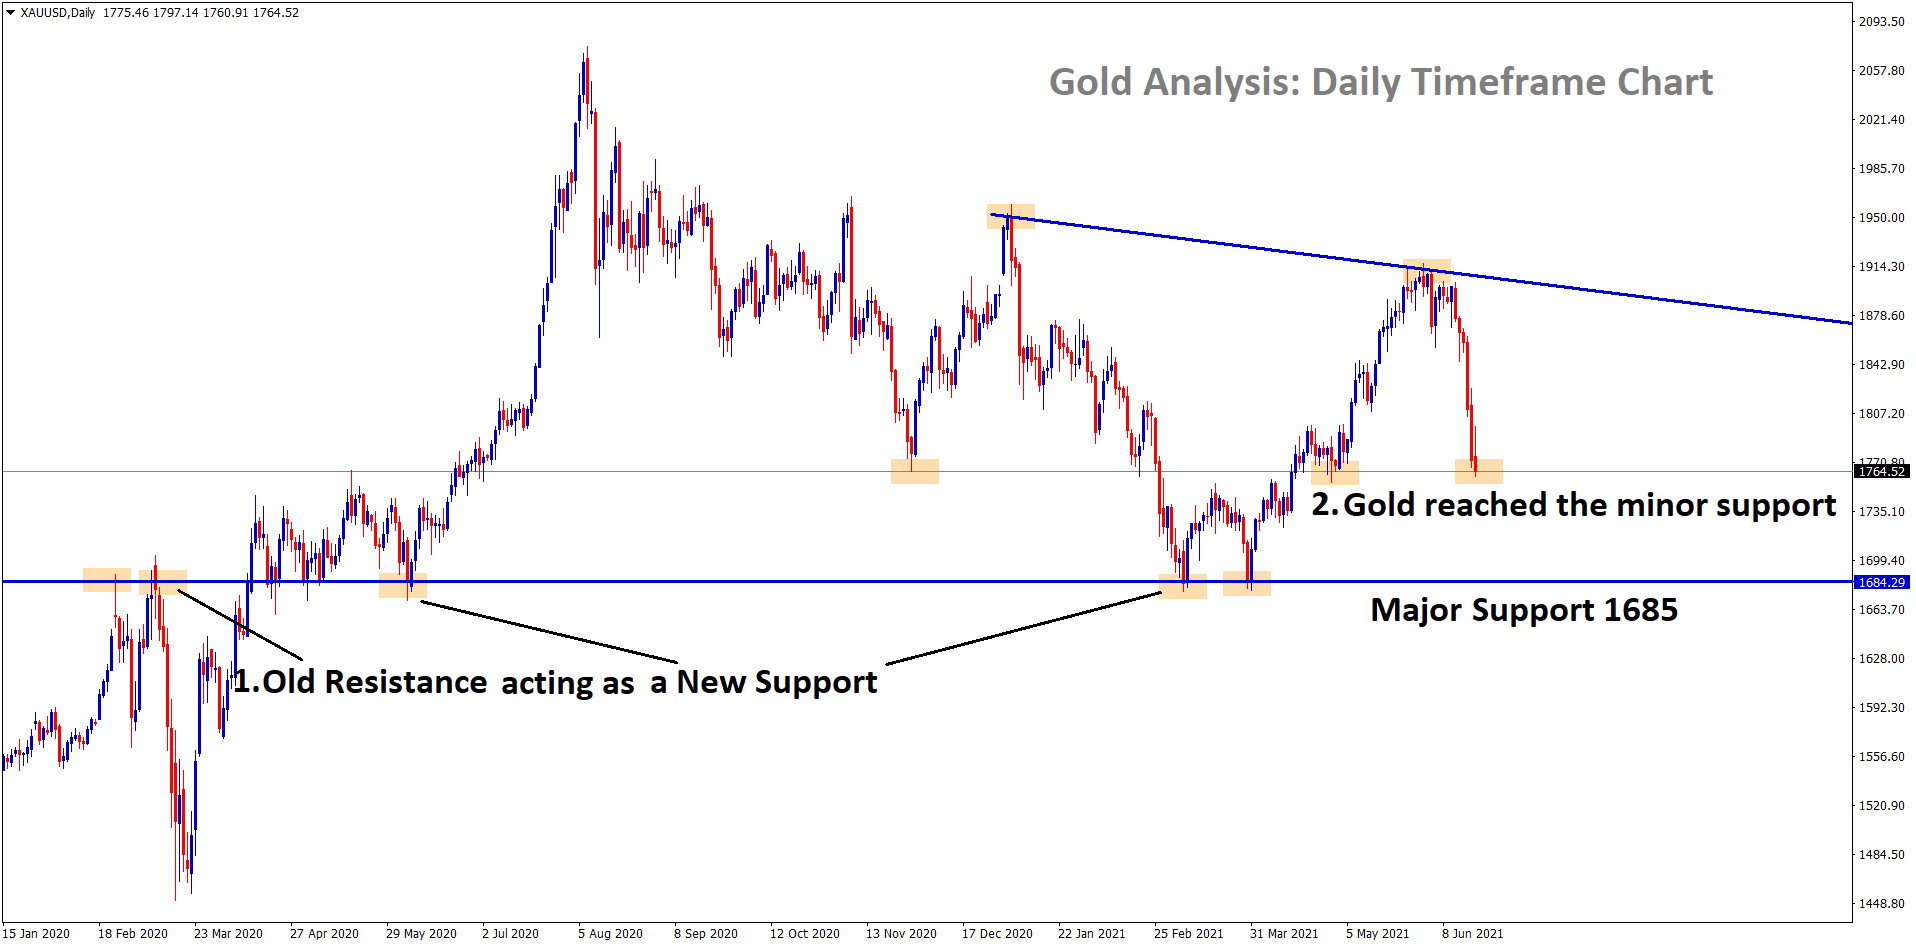 Gold price reached the minor support level wait for the confirmation of correction or breakout of this minor support